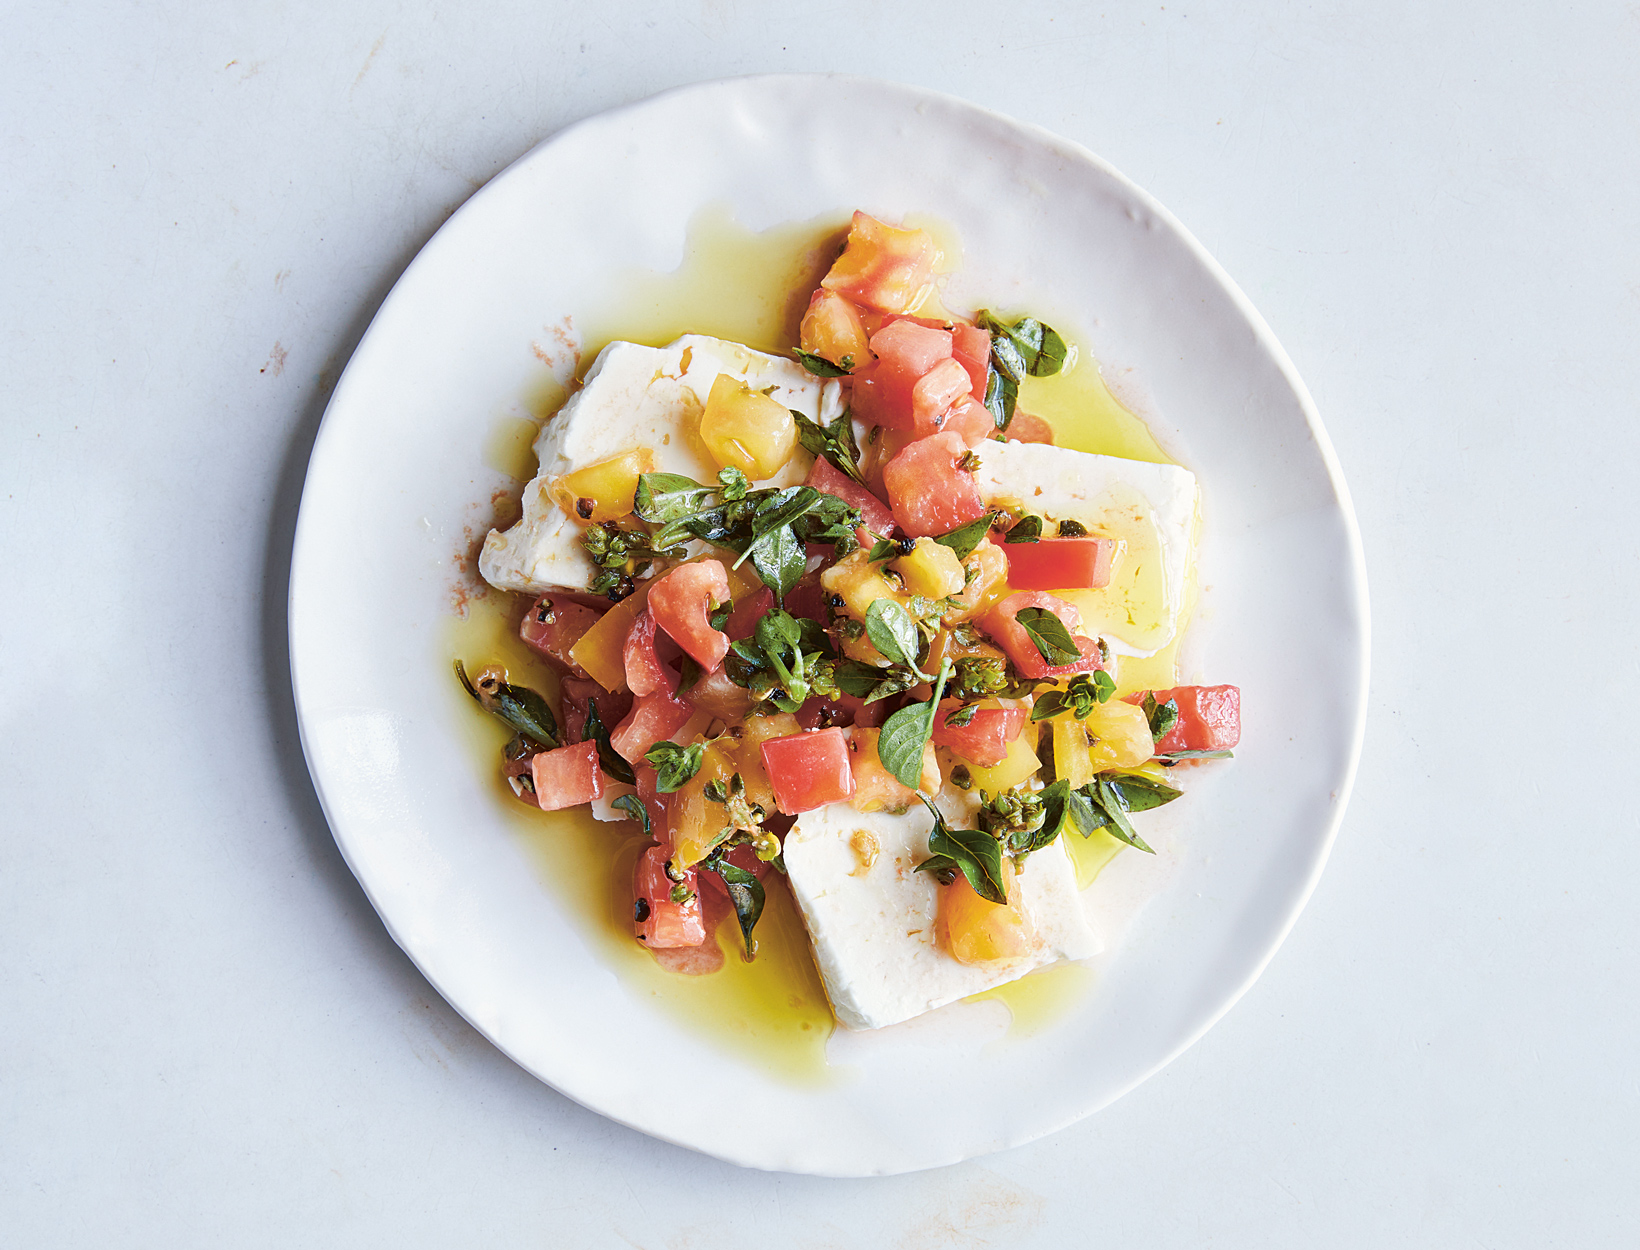 Feta, Heirloom Tomato, and Oregano